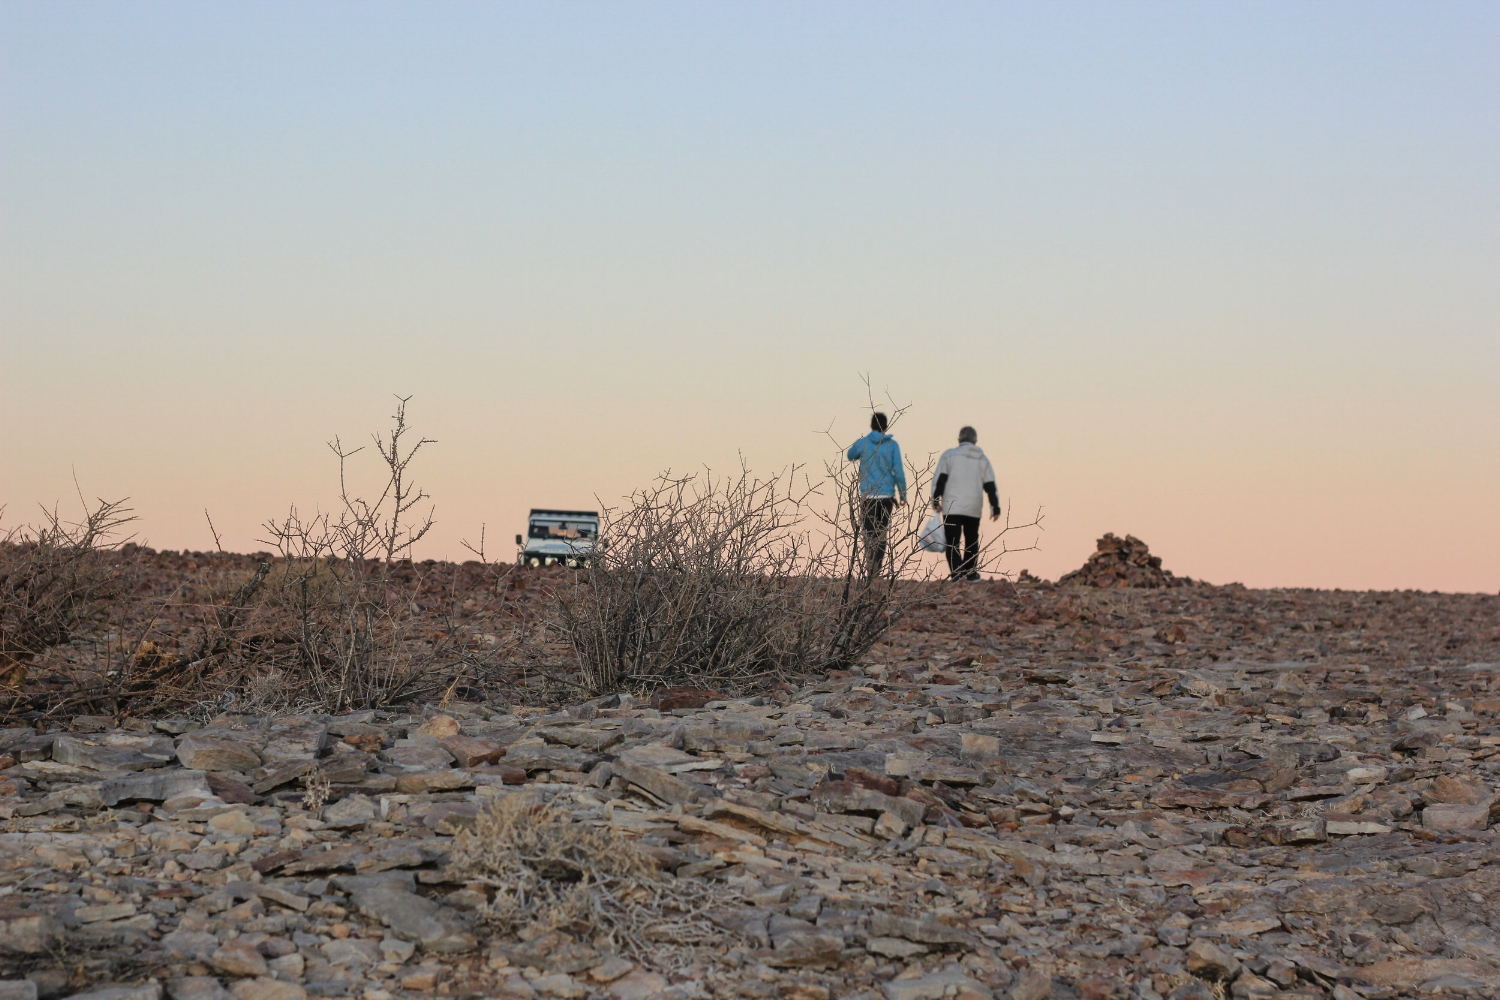 Leaving the Land Rover for sundowners at the Fish River Canyon